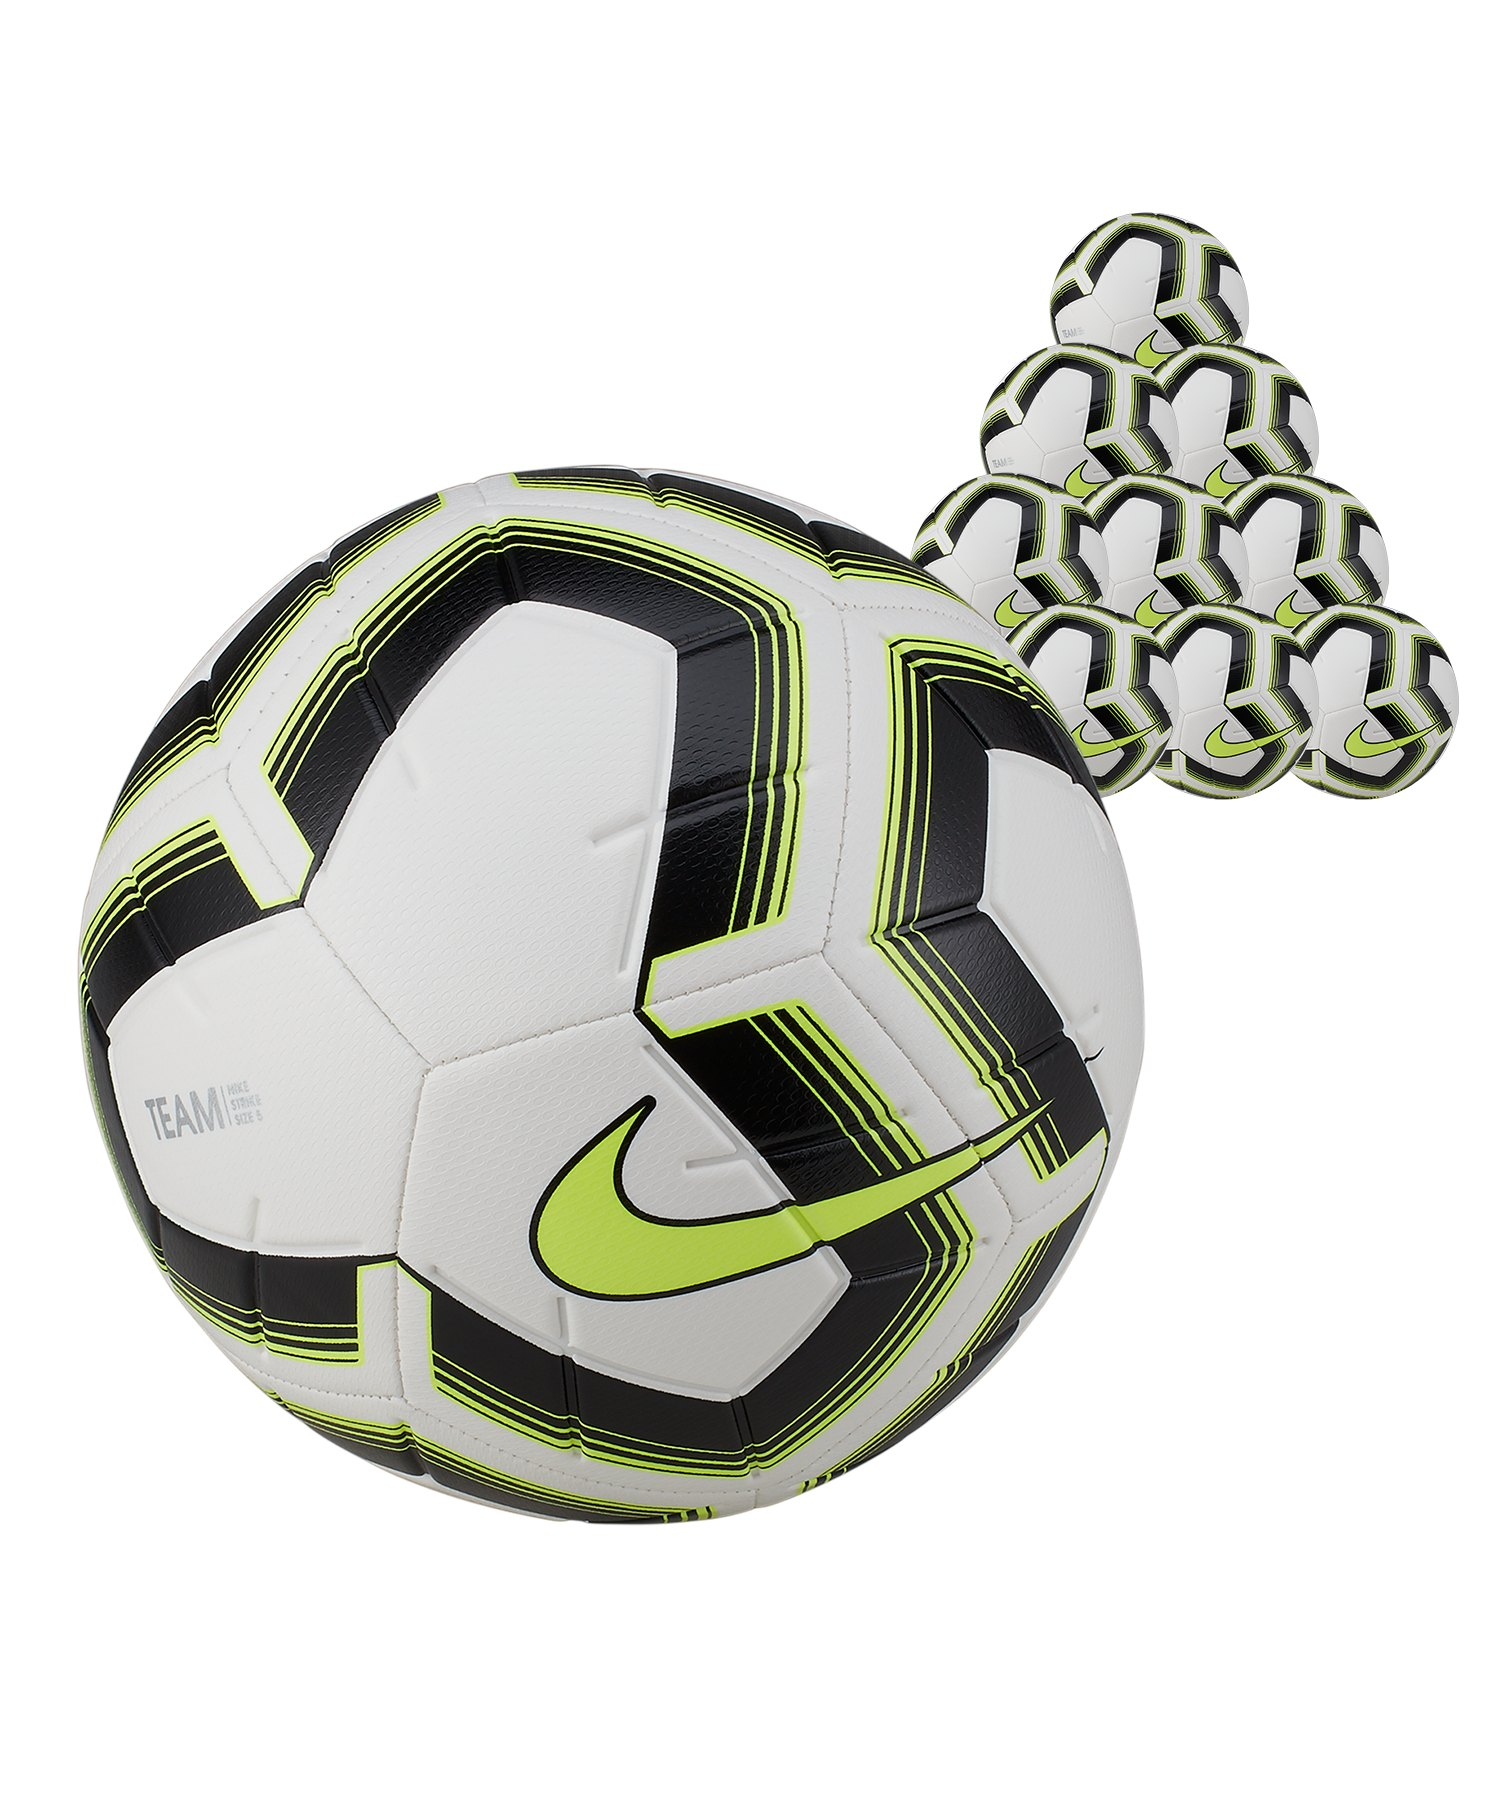 Nike Strike Team 20x Trainingsball Gr.5 Weiss F102 - weiss